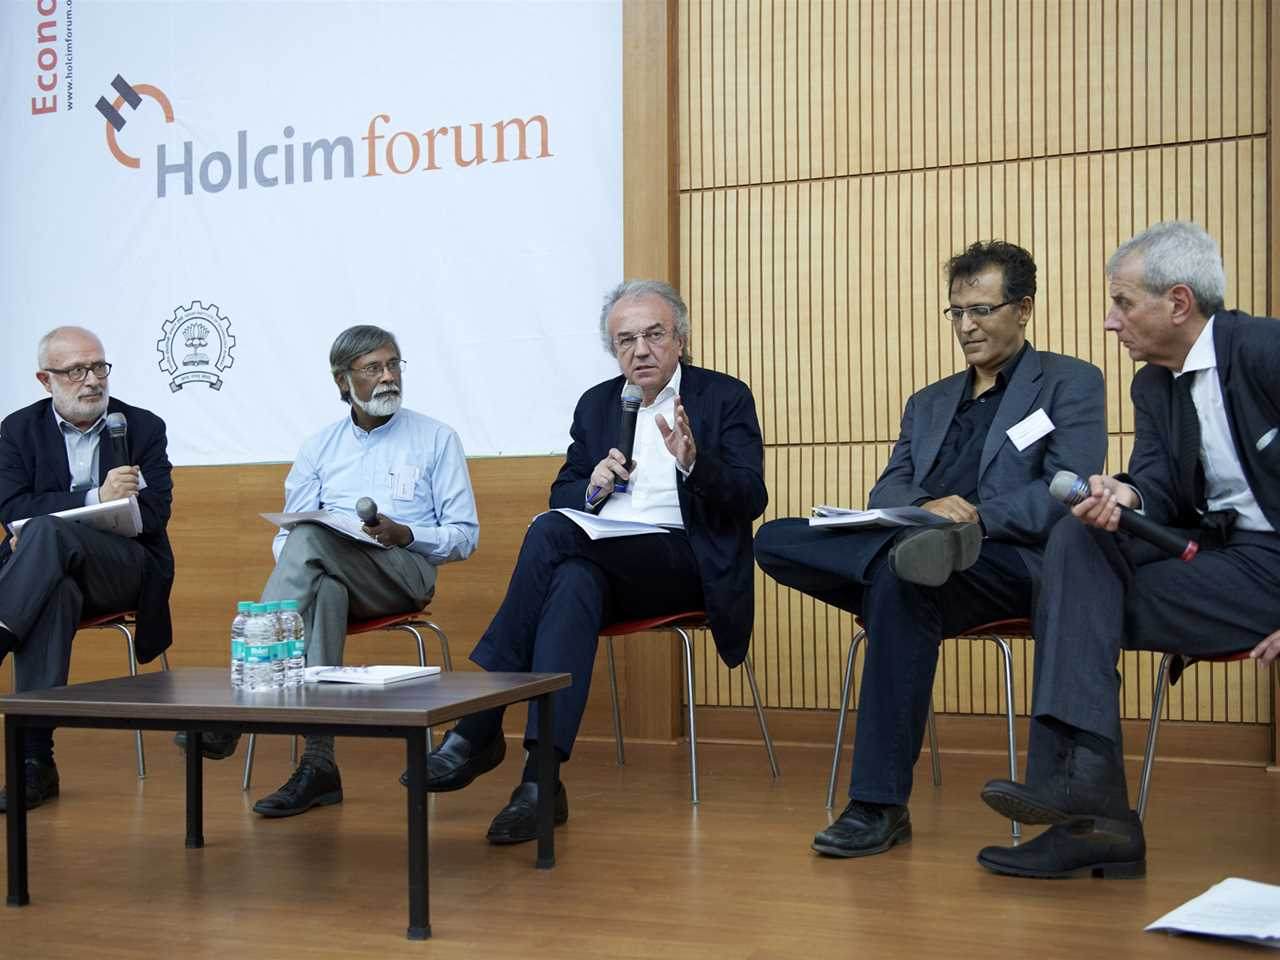 4th Holcim Forum in Mumbai, India 2013: Concluding debate discussing workshop findings (l-r): …